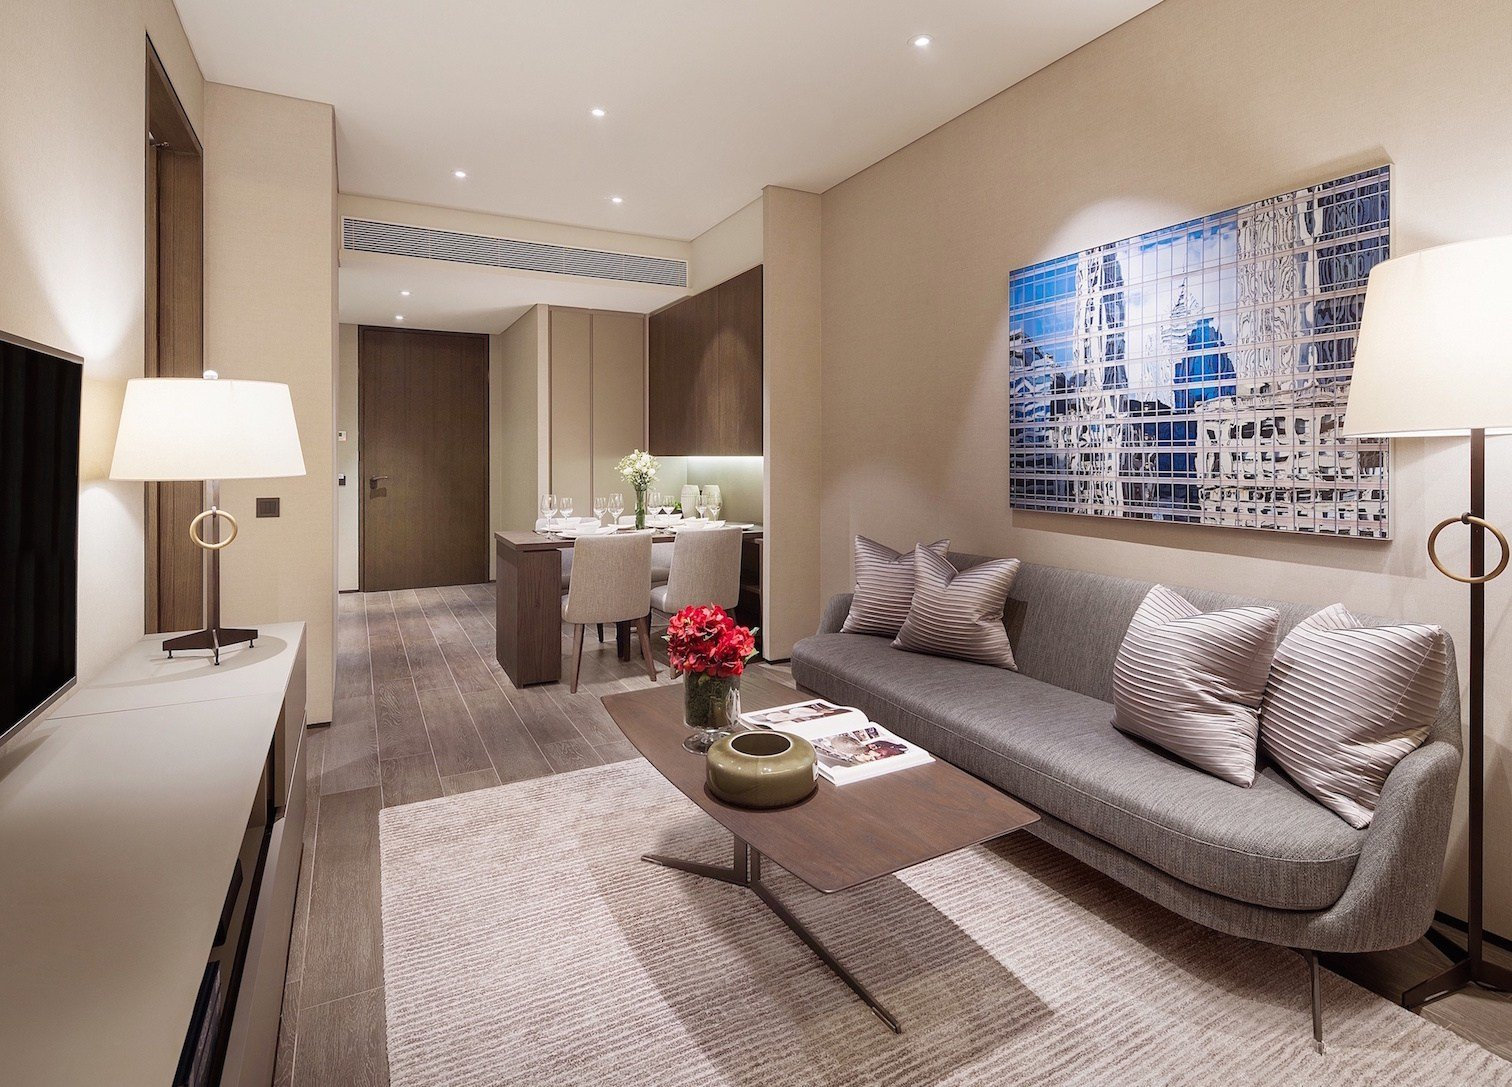 Best Oakwood Premier Oue Singapore To Open On 15 June 2017 First Oakwood Premier Property In With Pictures